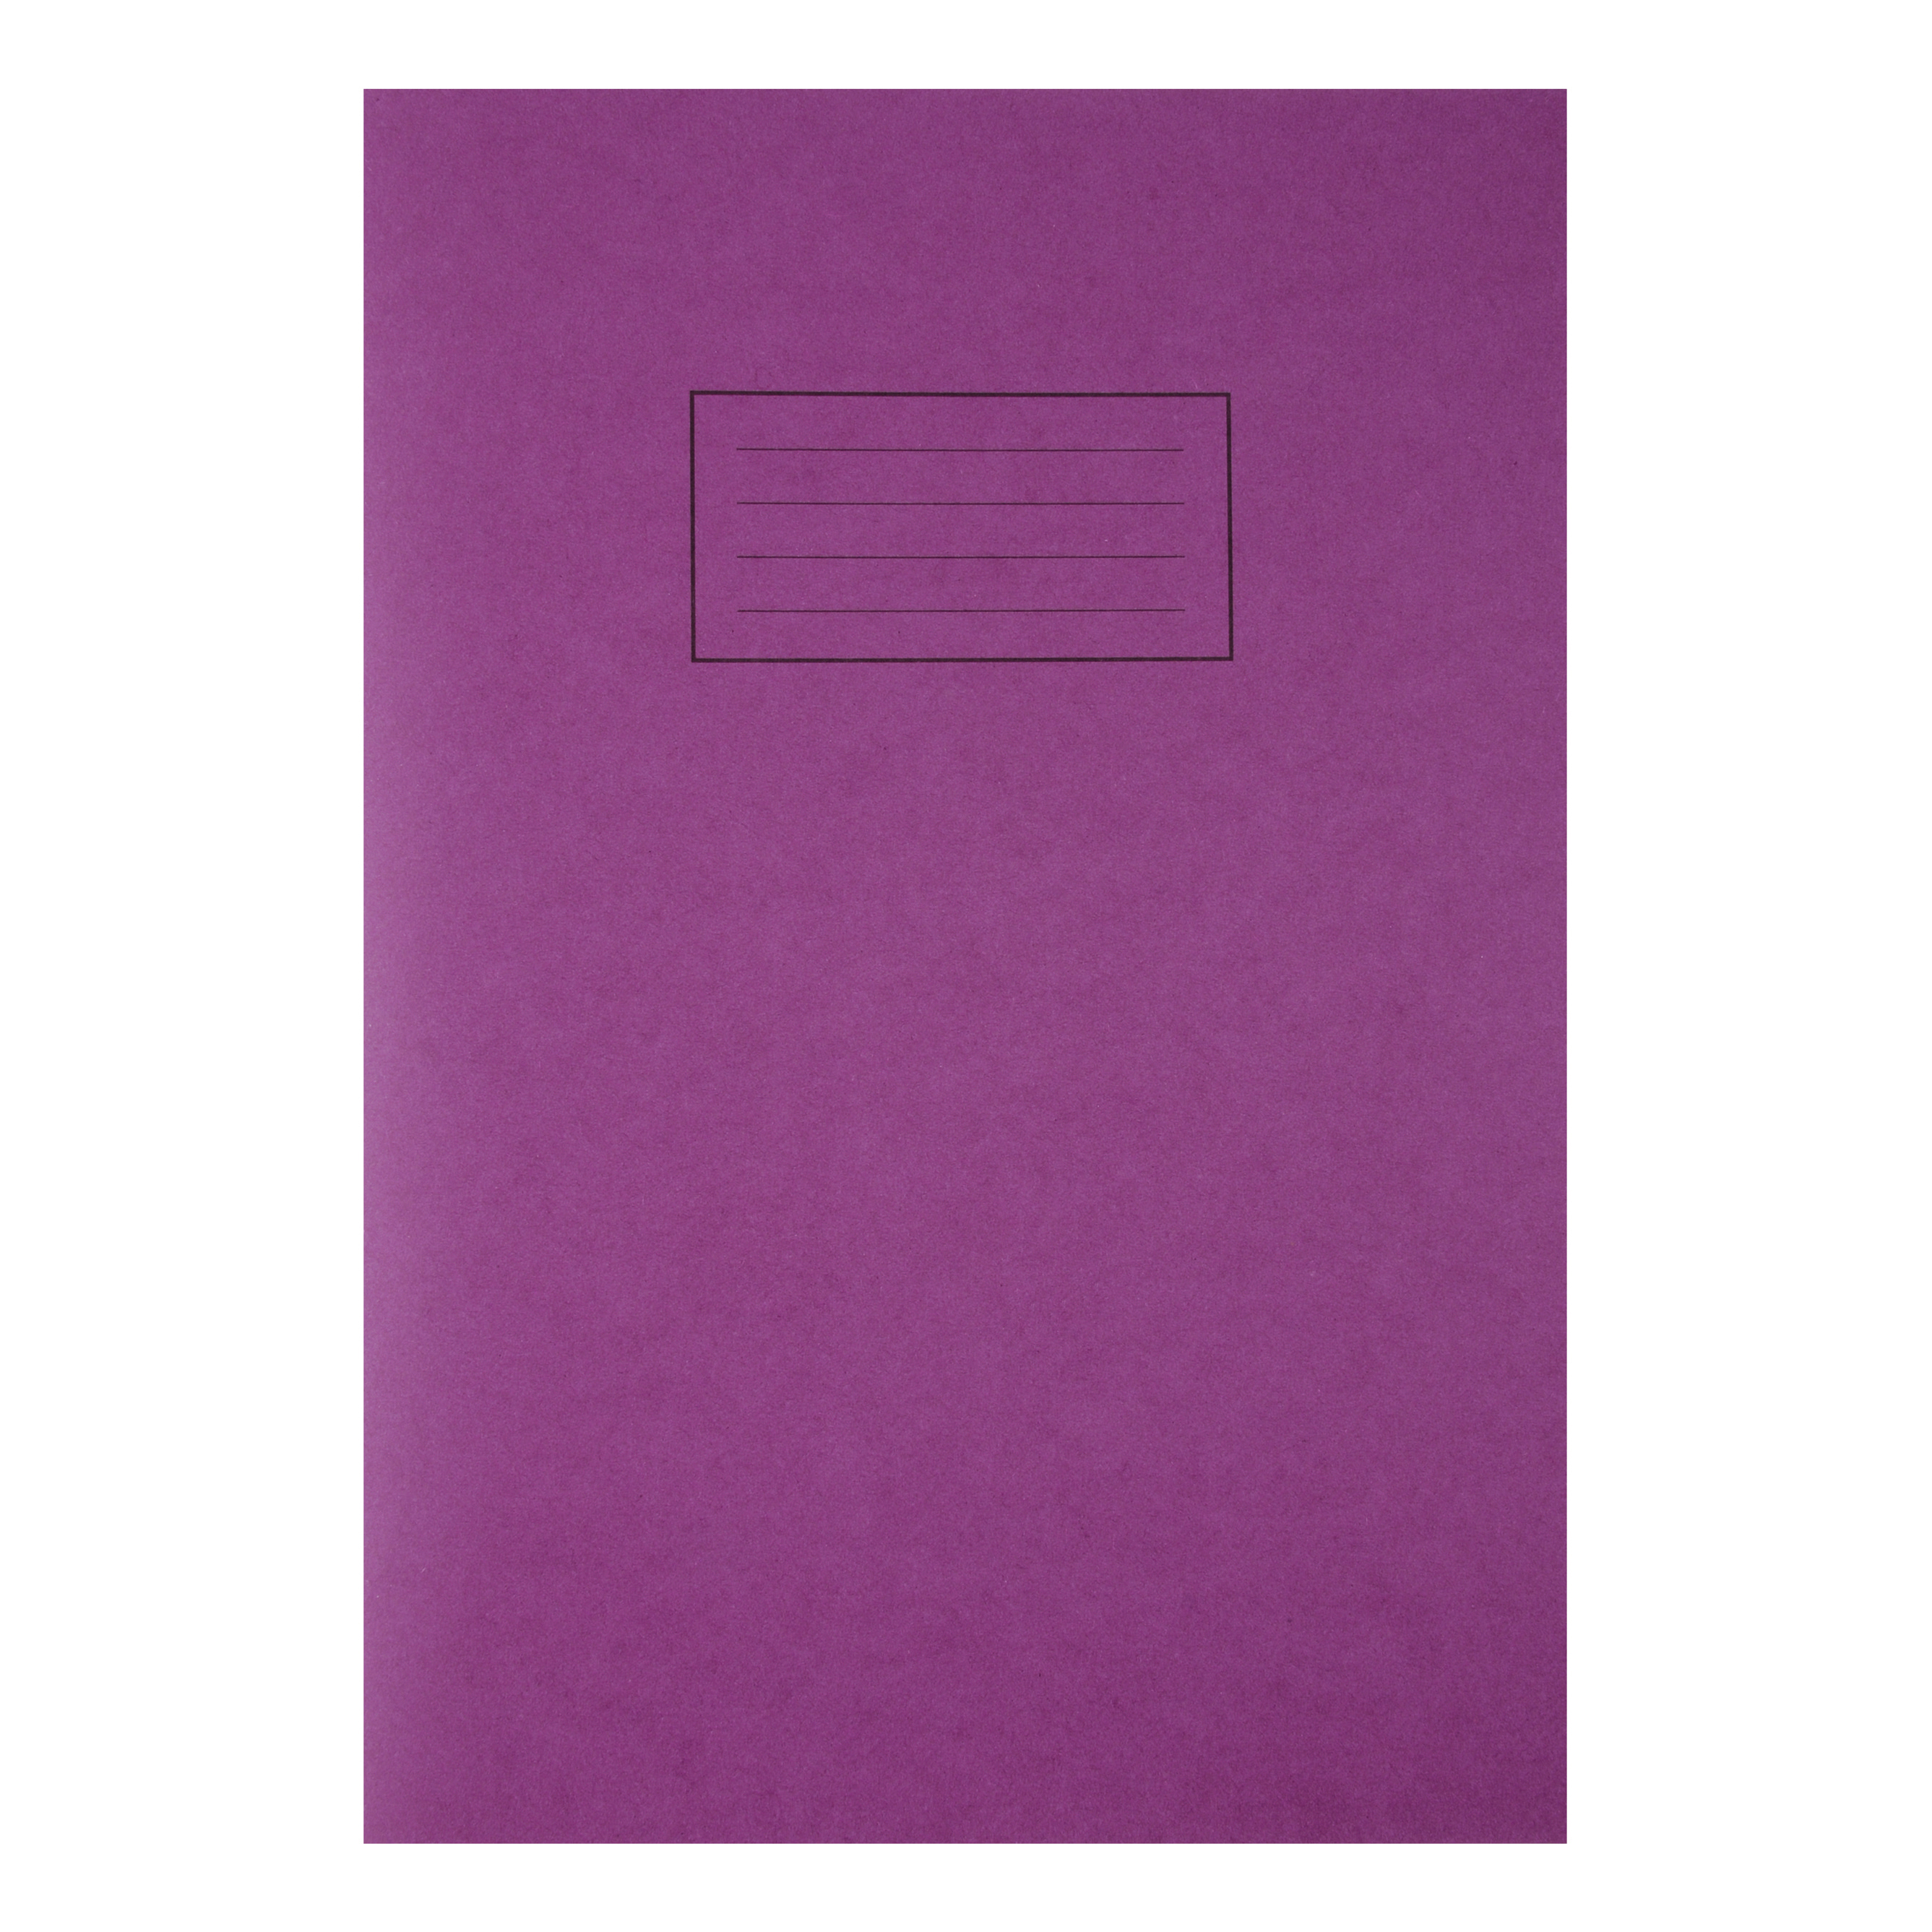 Silvine Exercise Book Ruled and Margin 80 Pages 75gsm A4 Purple Ref EX111 [Pack 10]